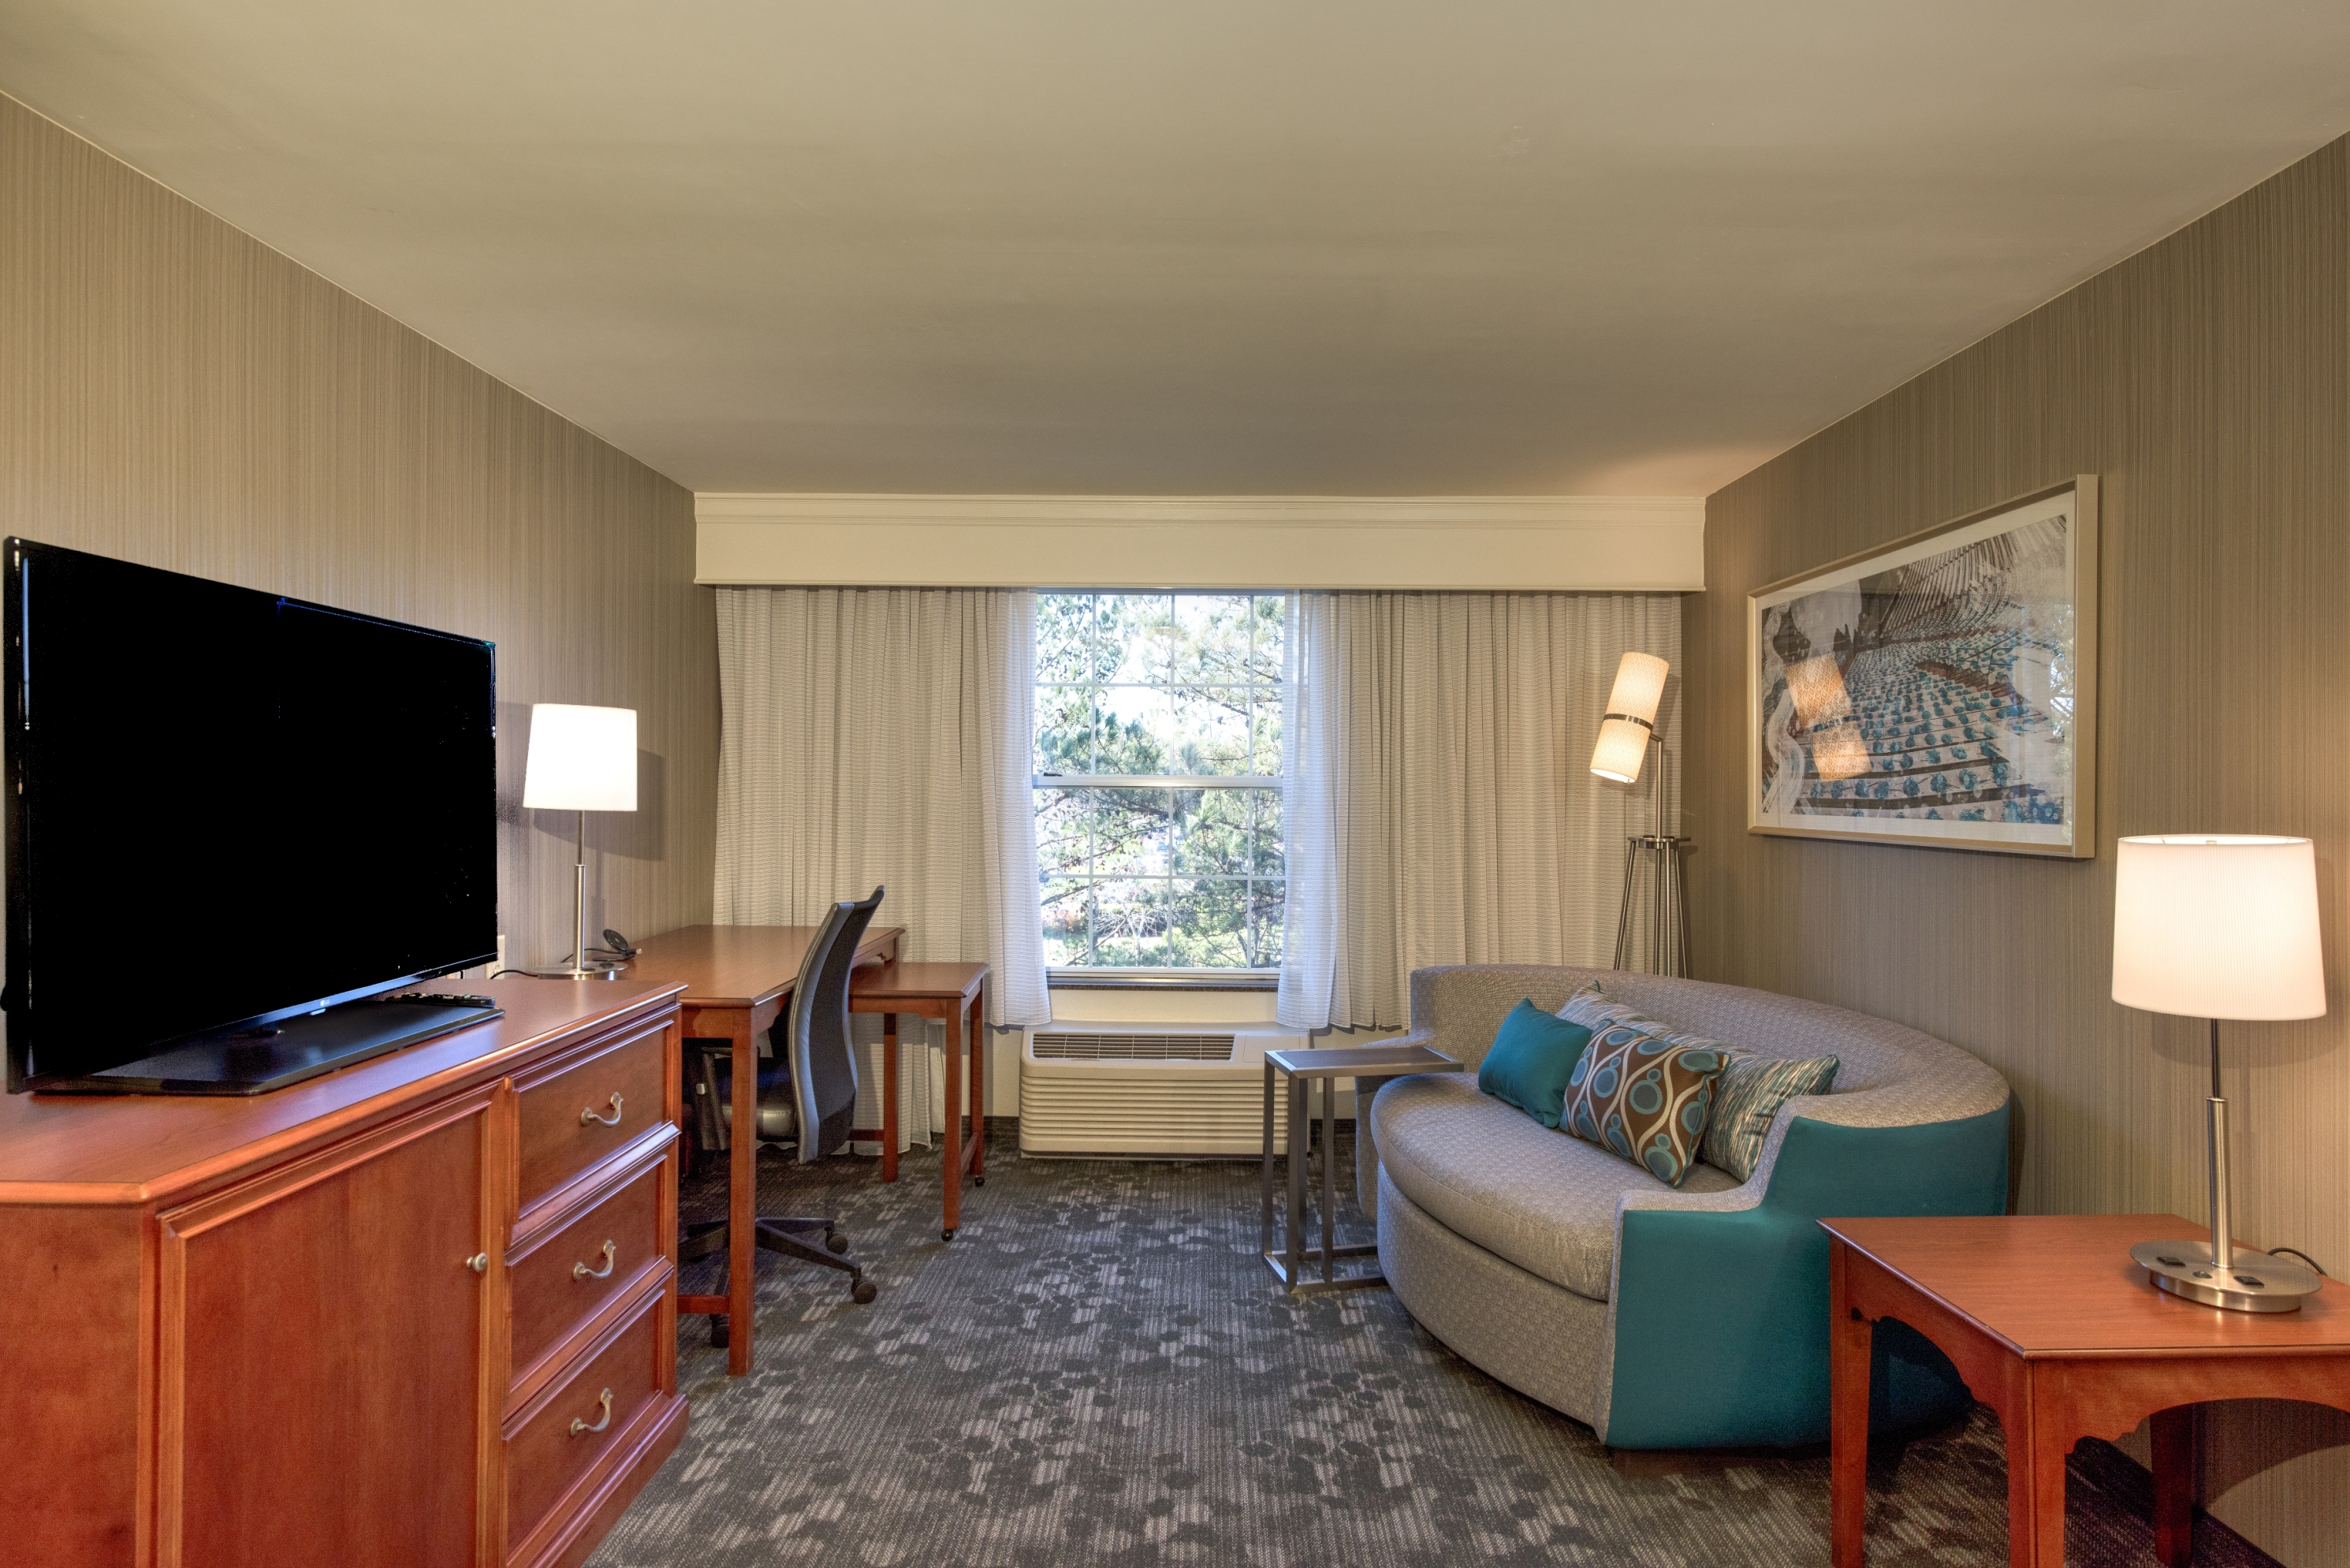 Courtyard by Marriott Chapel Hill image 14